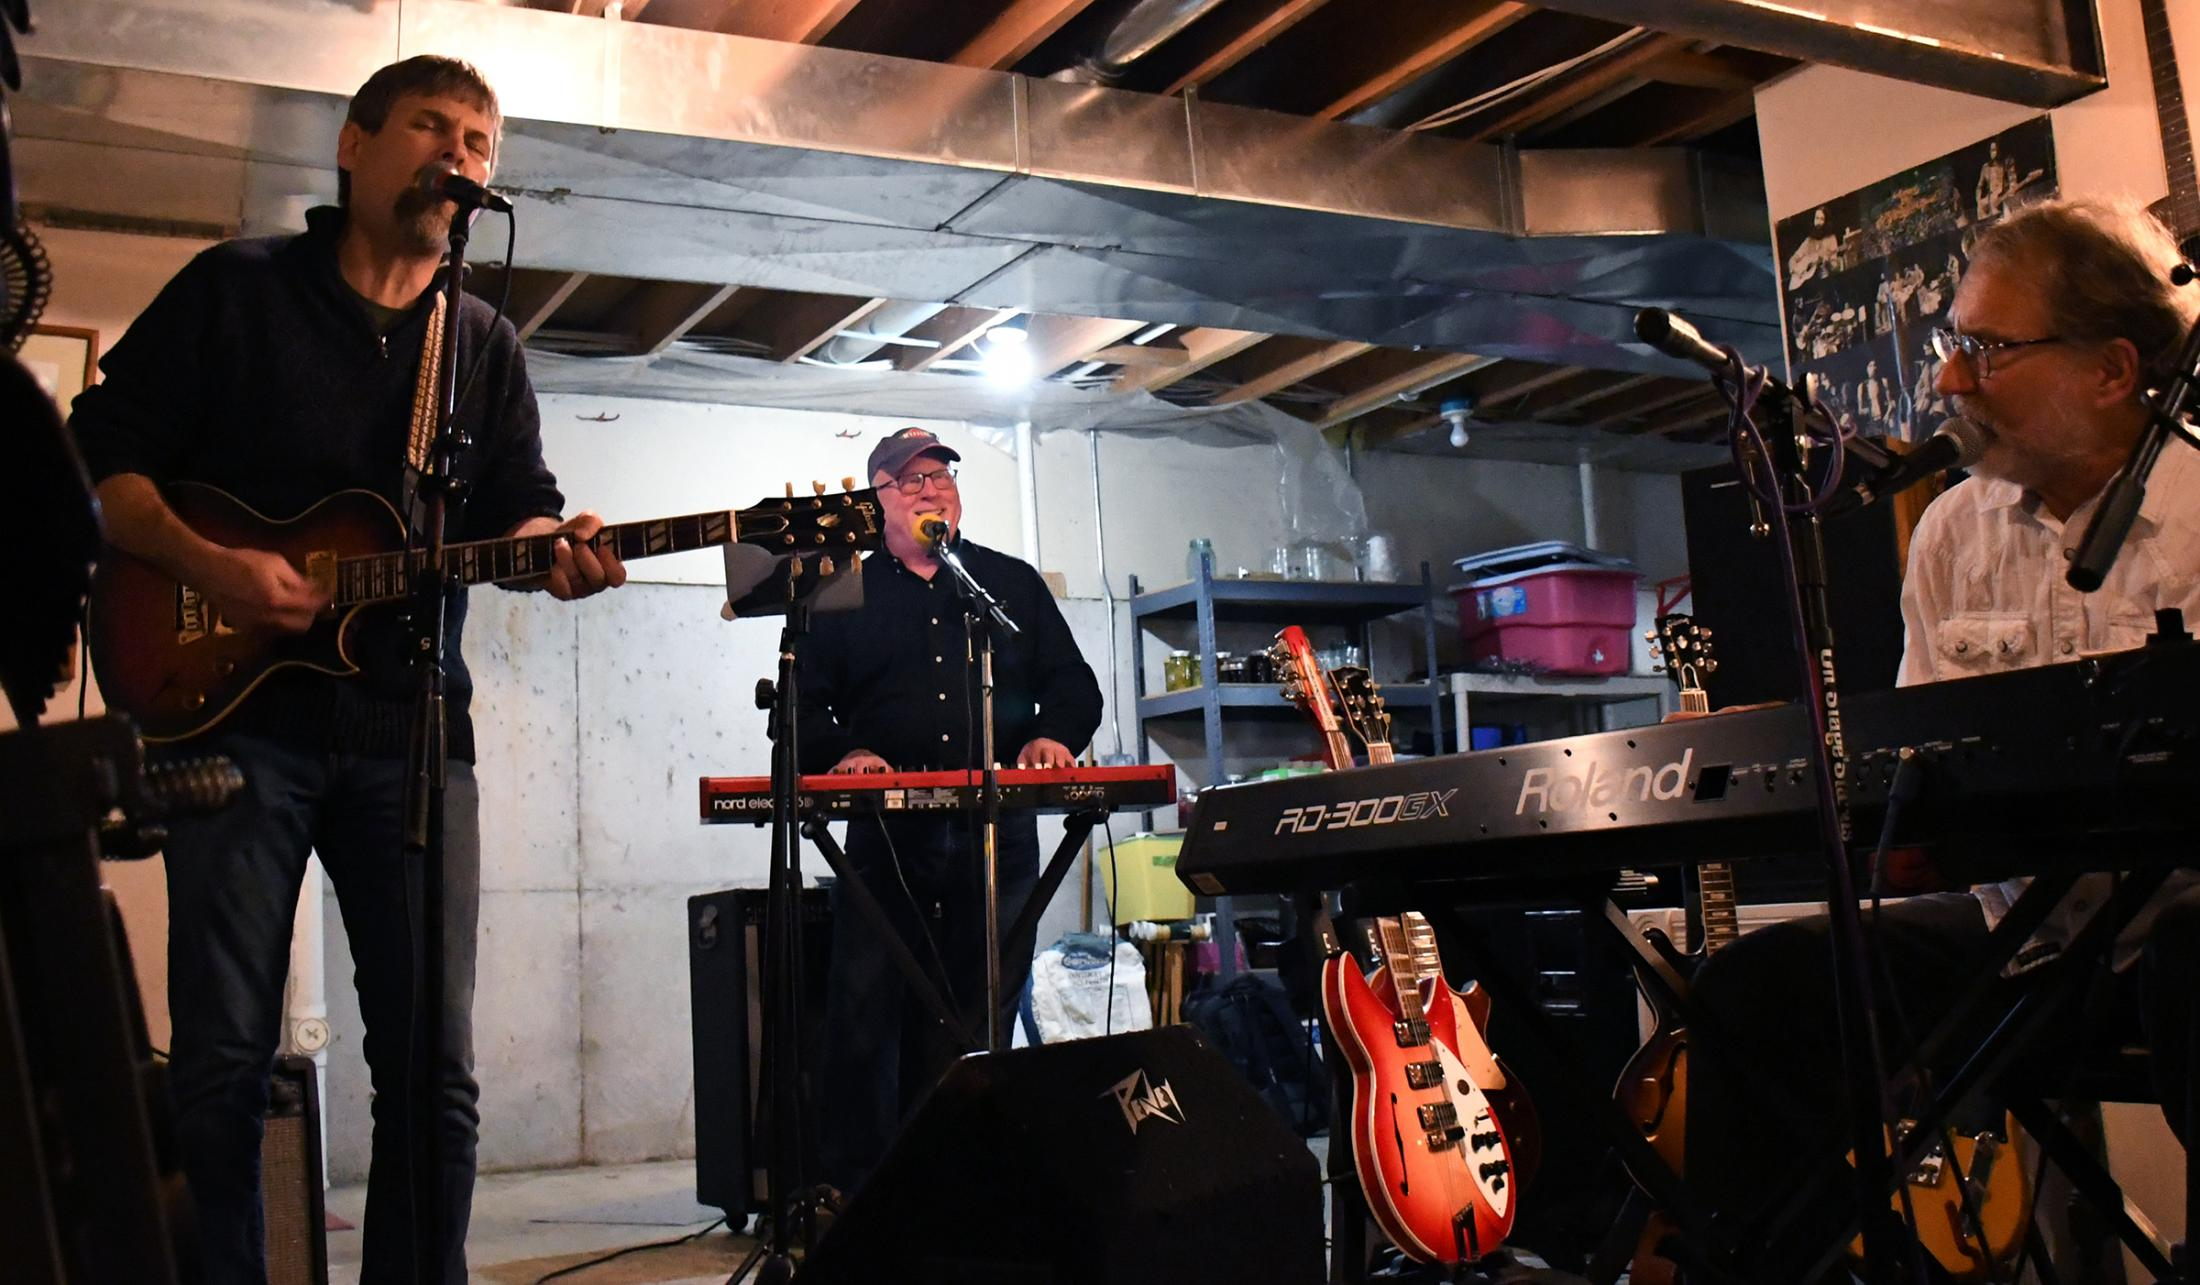 From left to right, Flyover Country members Soren Larsen, Brad Crum and Steve Watts rehearse at Watts basement on Wednesday, Nov. 13, 2019 in Columbia, Missouri. The band was preparing to play at the Rocheport General Store, their next concert after playing at Rose Music Hall in the beginning of the month.